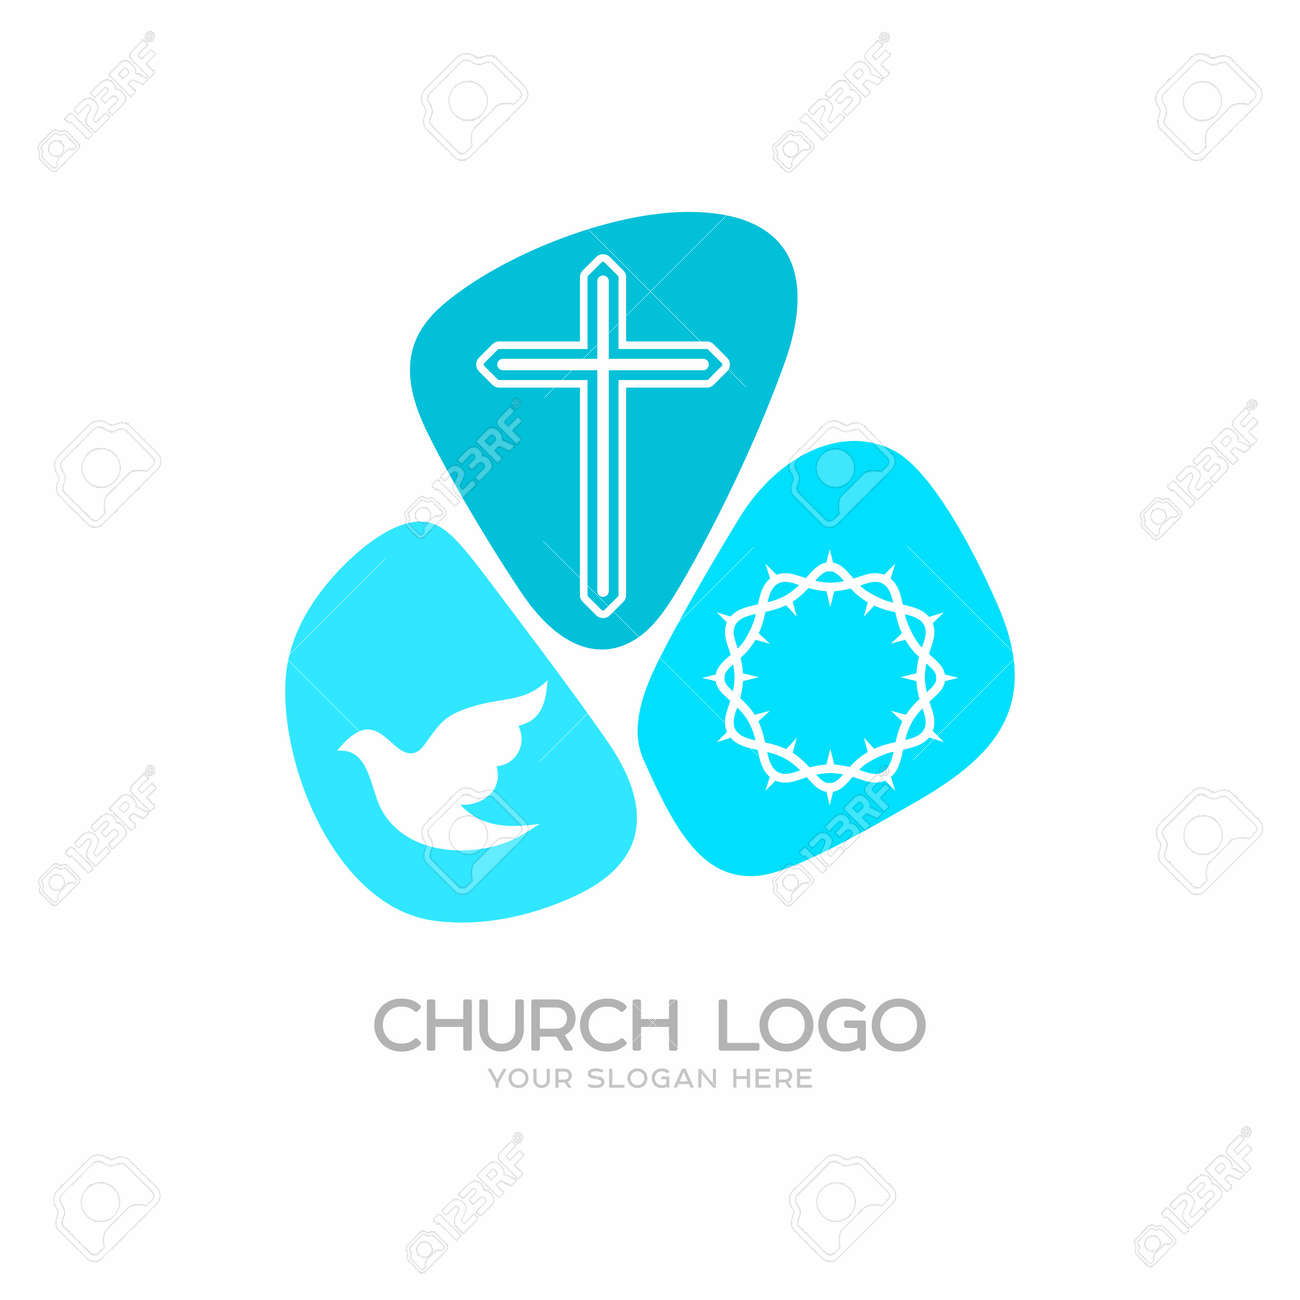 Church Logo Christian Symbols The Cross Of Jesus Christ A